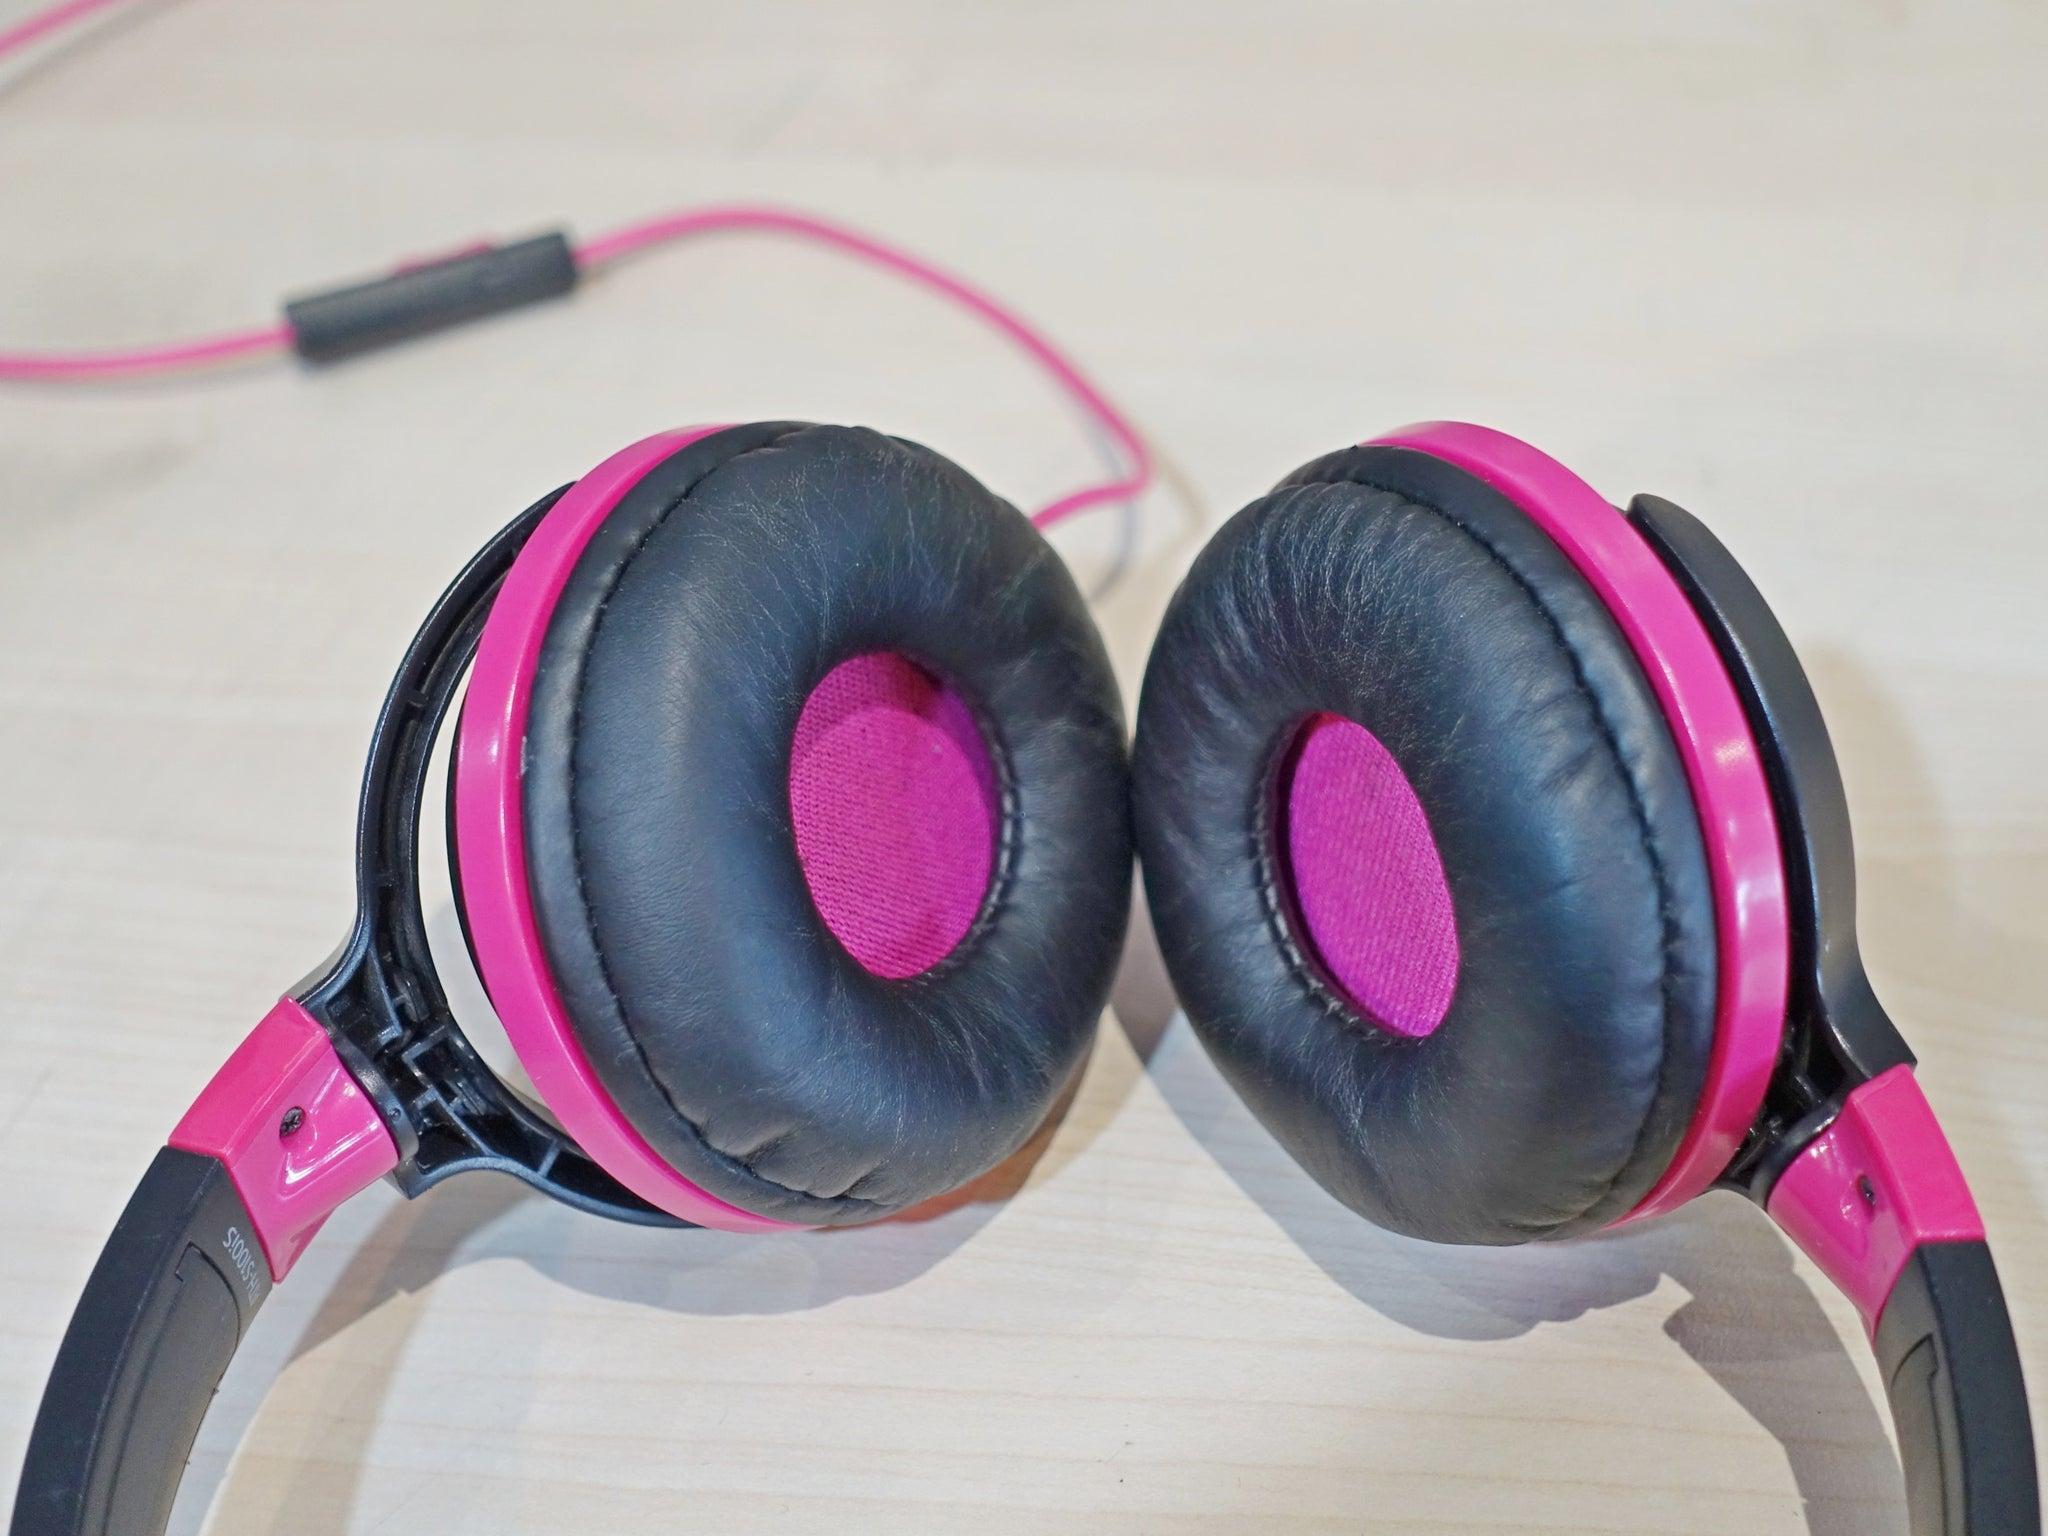 Audio Technica ATH-S100iS Demo (SS15) - Jaben - The Little Headphone Store